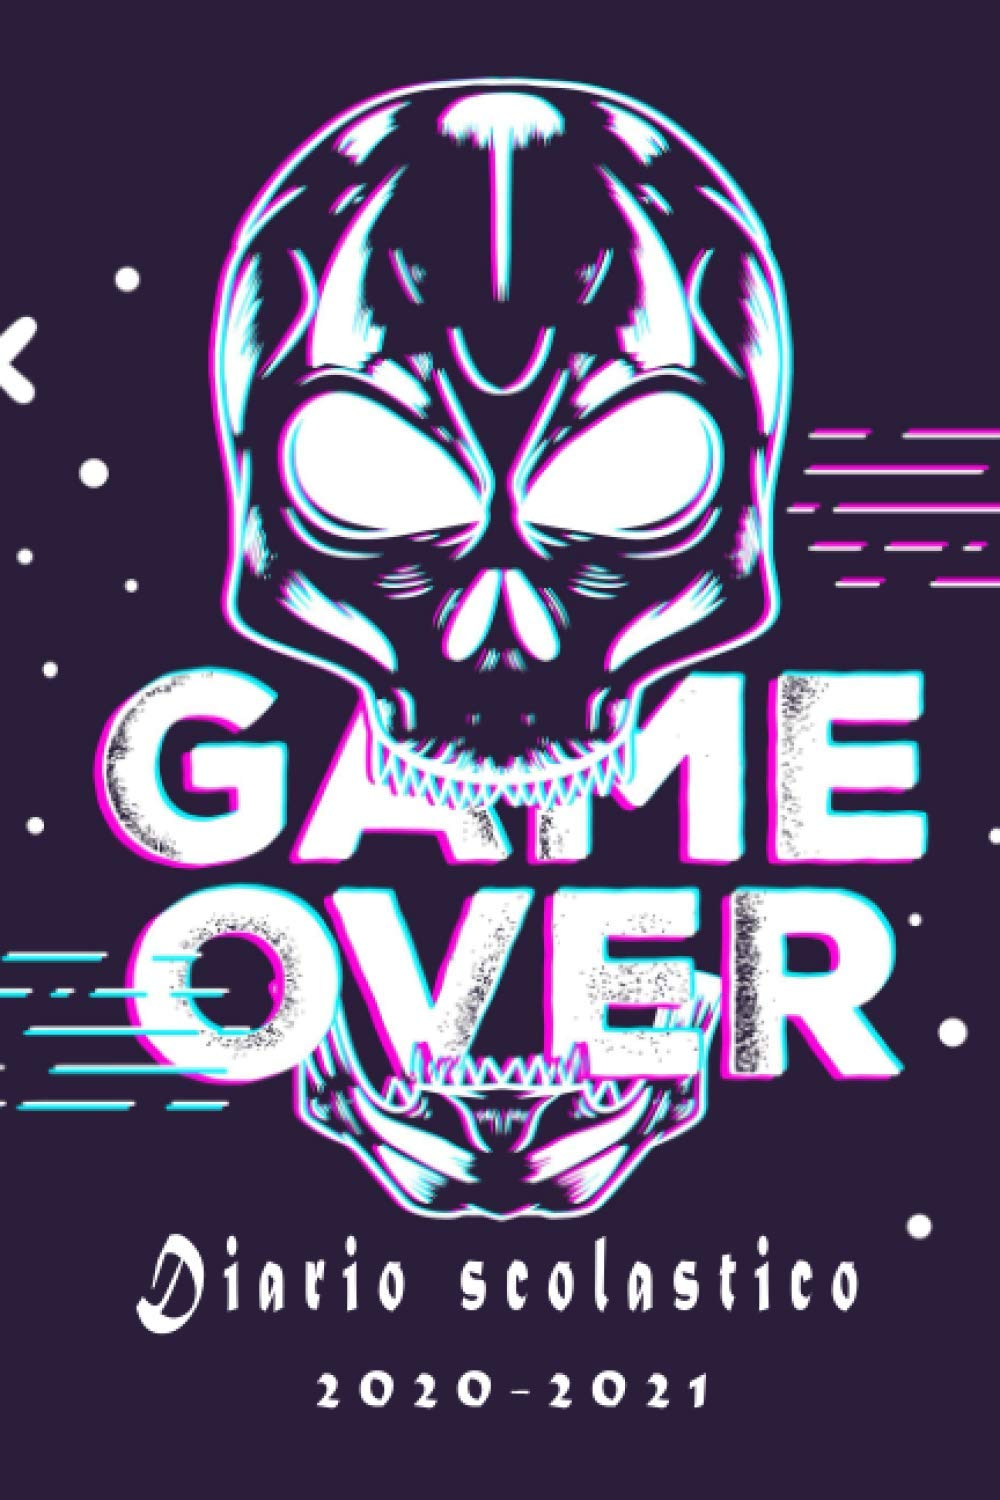 Diario scolastico 2020 2021: Diario game over, gamer per studente